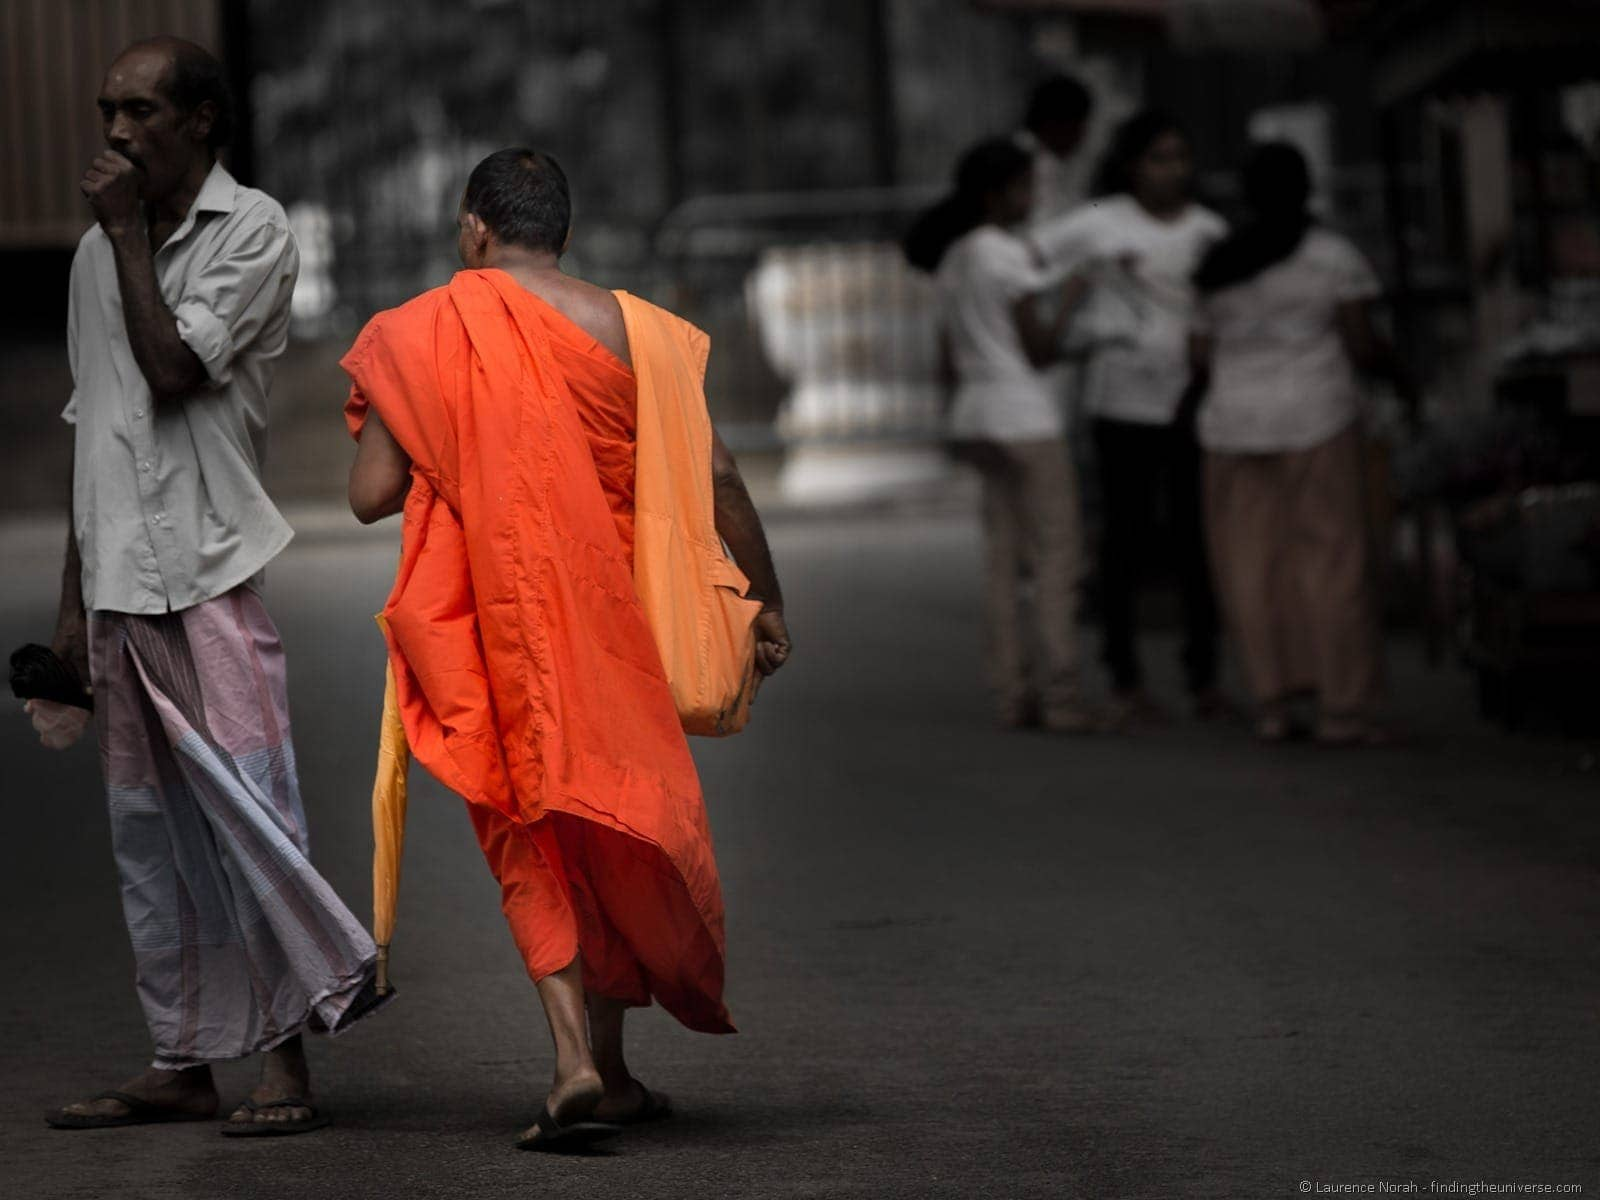 Monk walking Sri Lanka